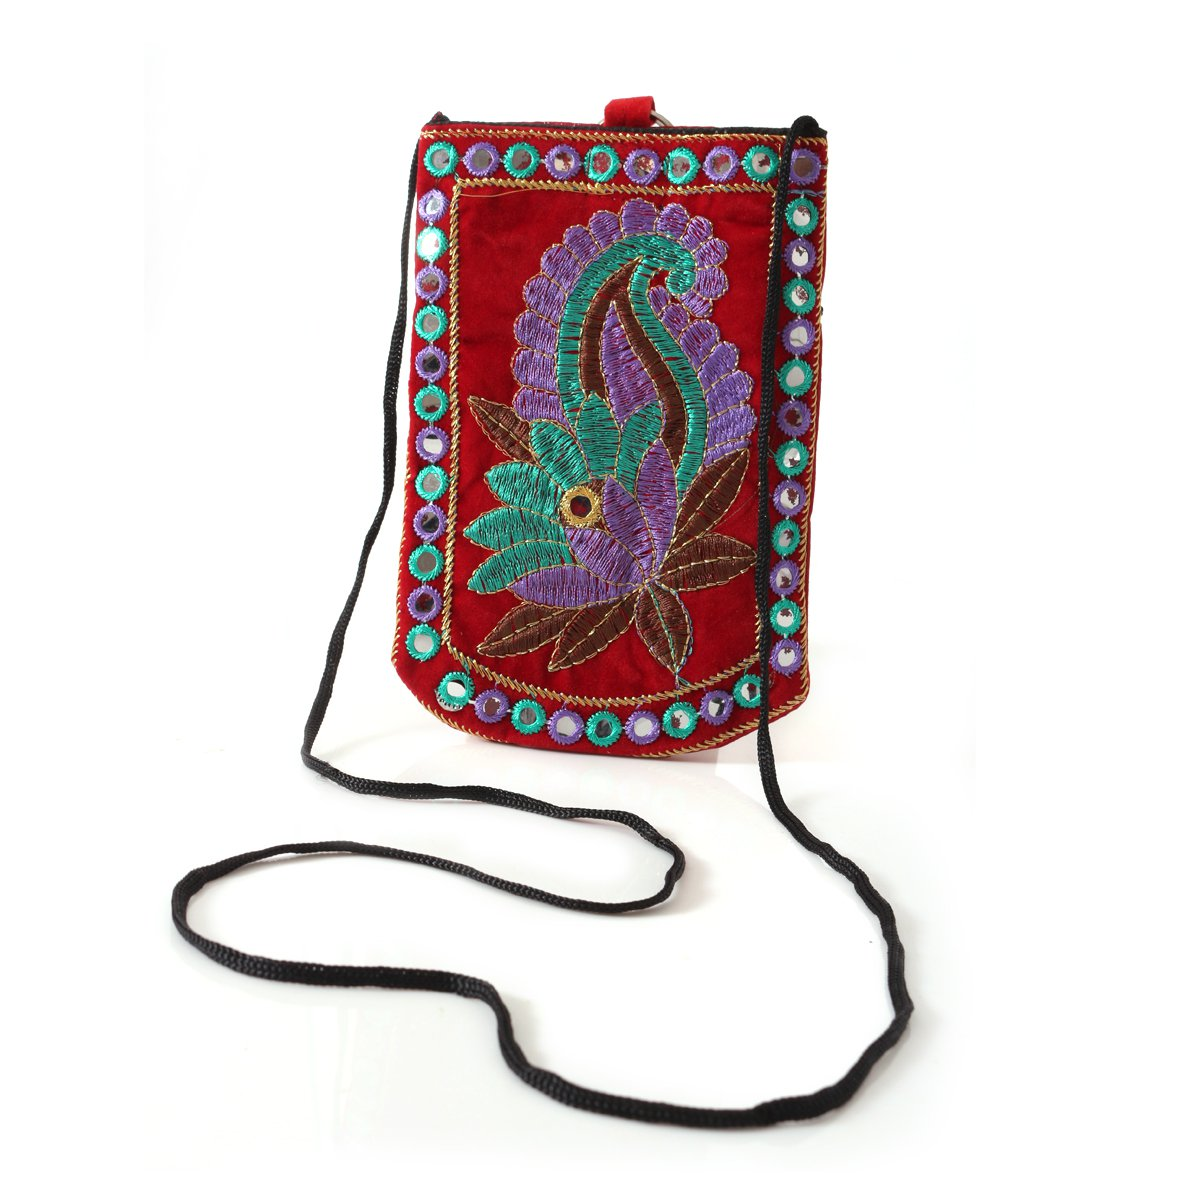 Mobile Pouch return gift